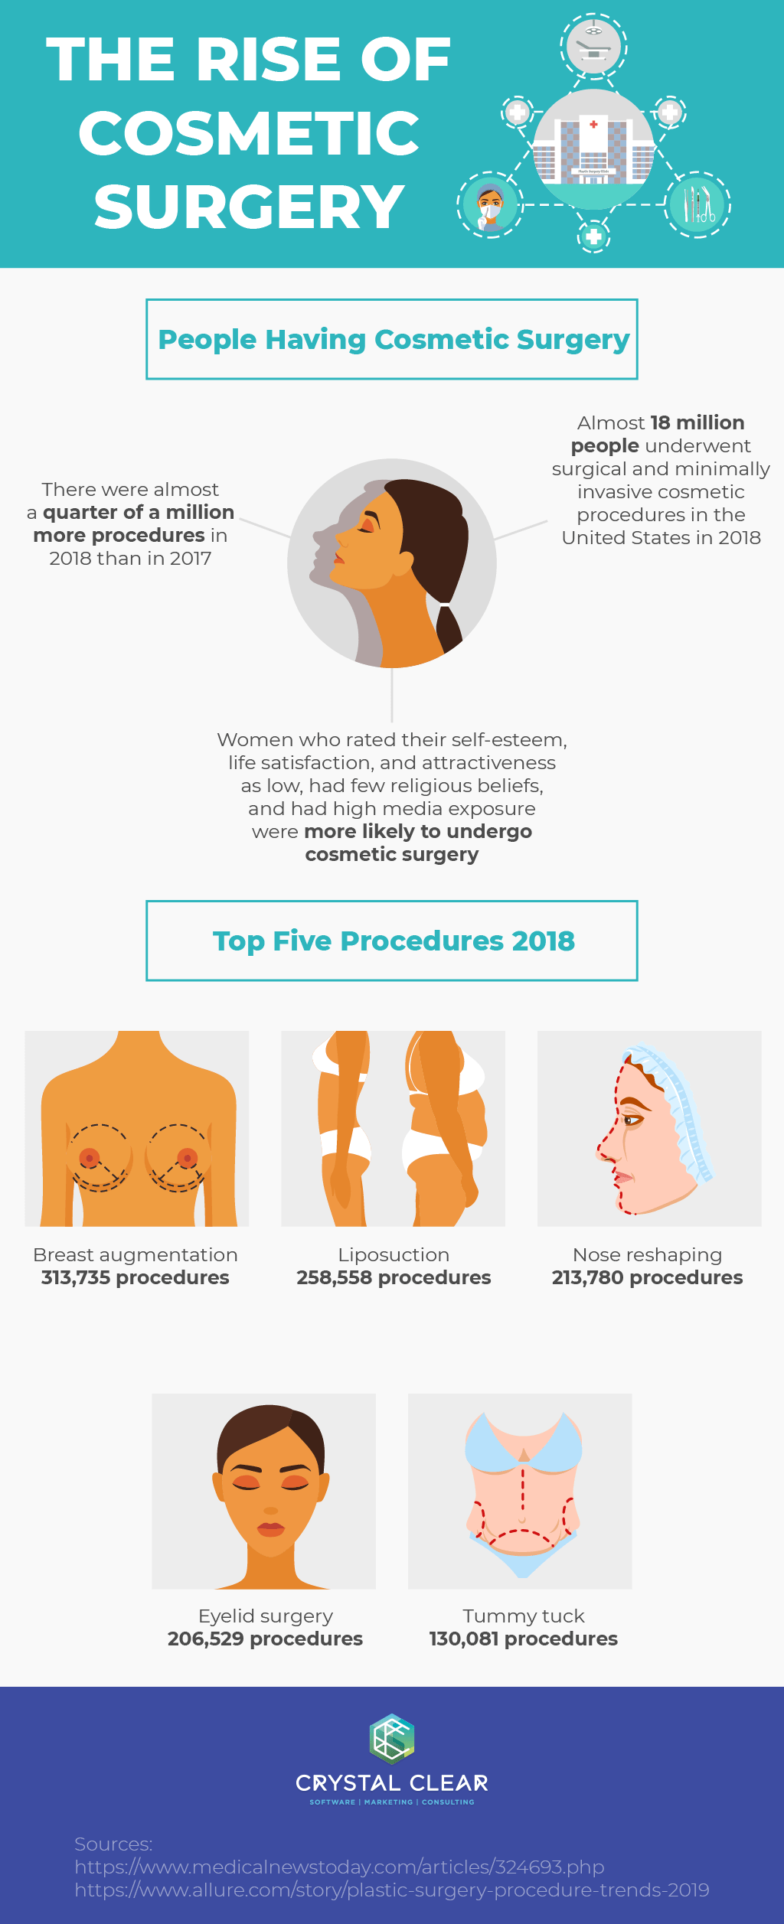 The Rise of Cosmetic Surgery Use